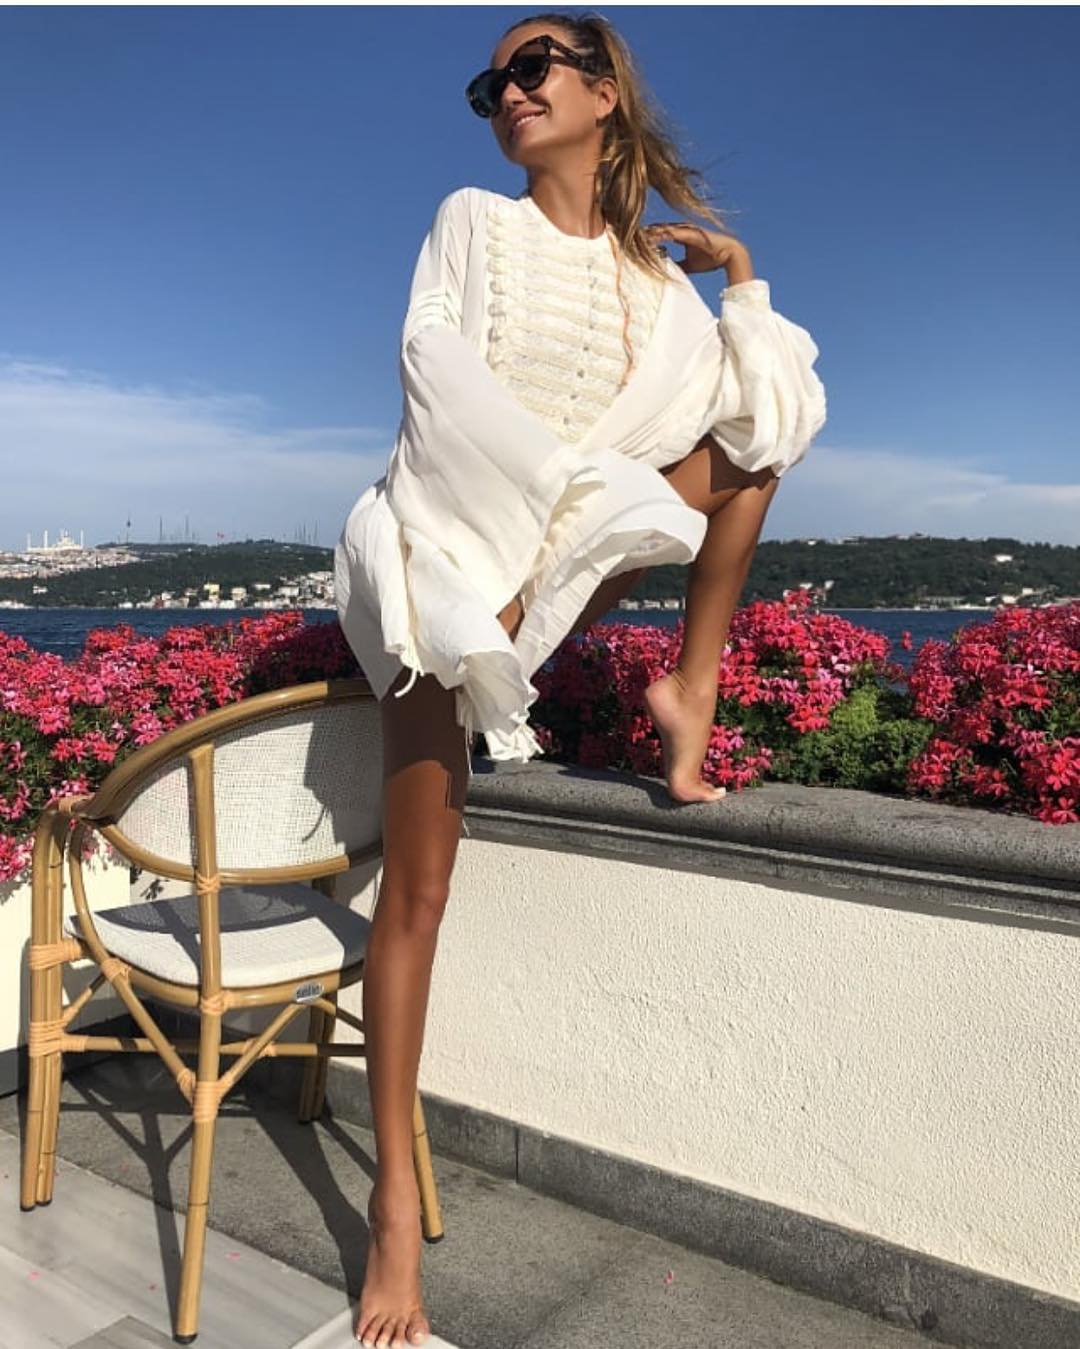 Band Style White Dress For Summer Vacation 2020